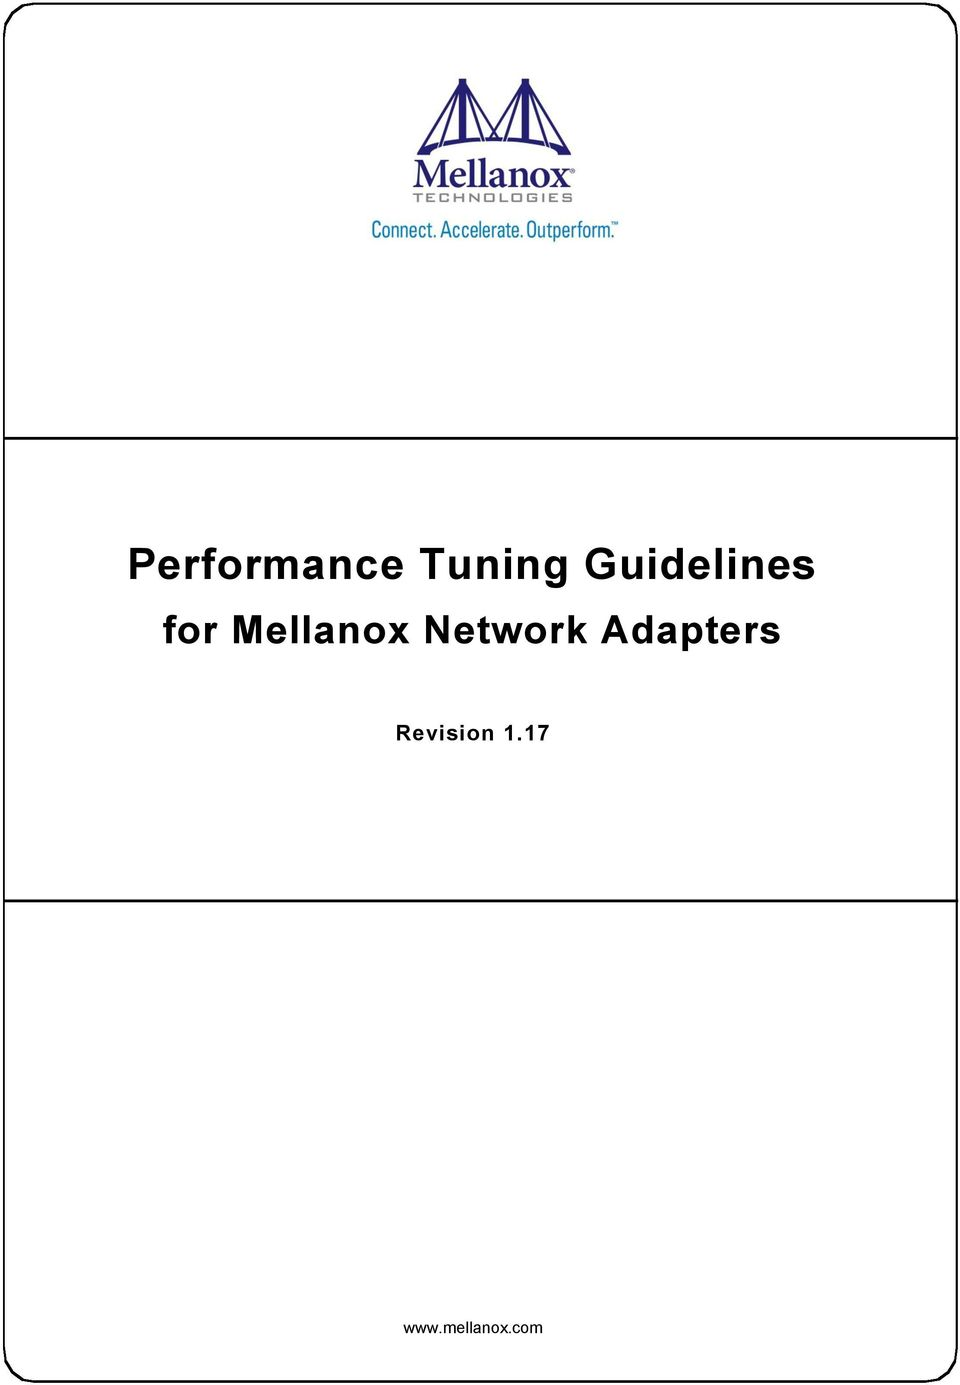 Performance Tuning Guidelines - PDF